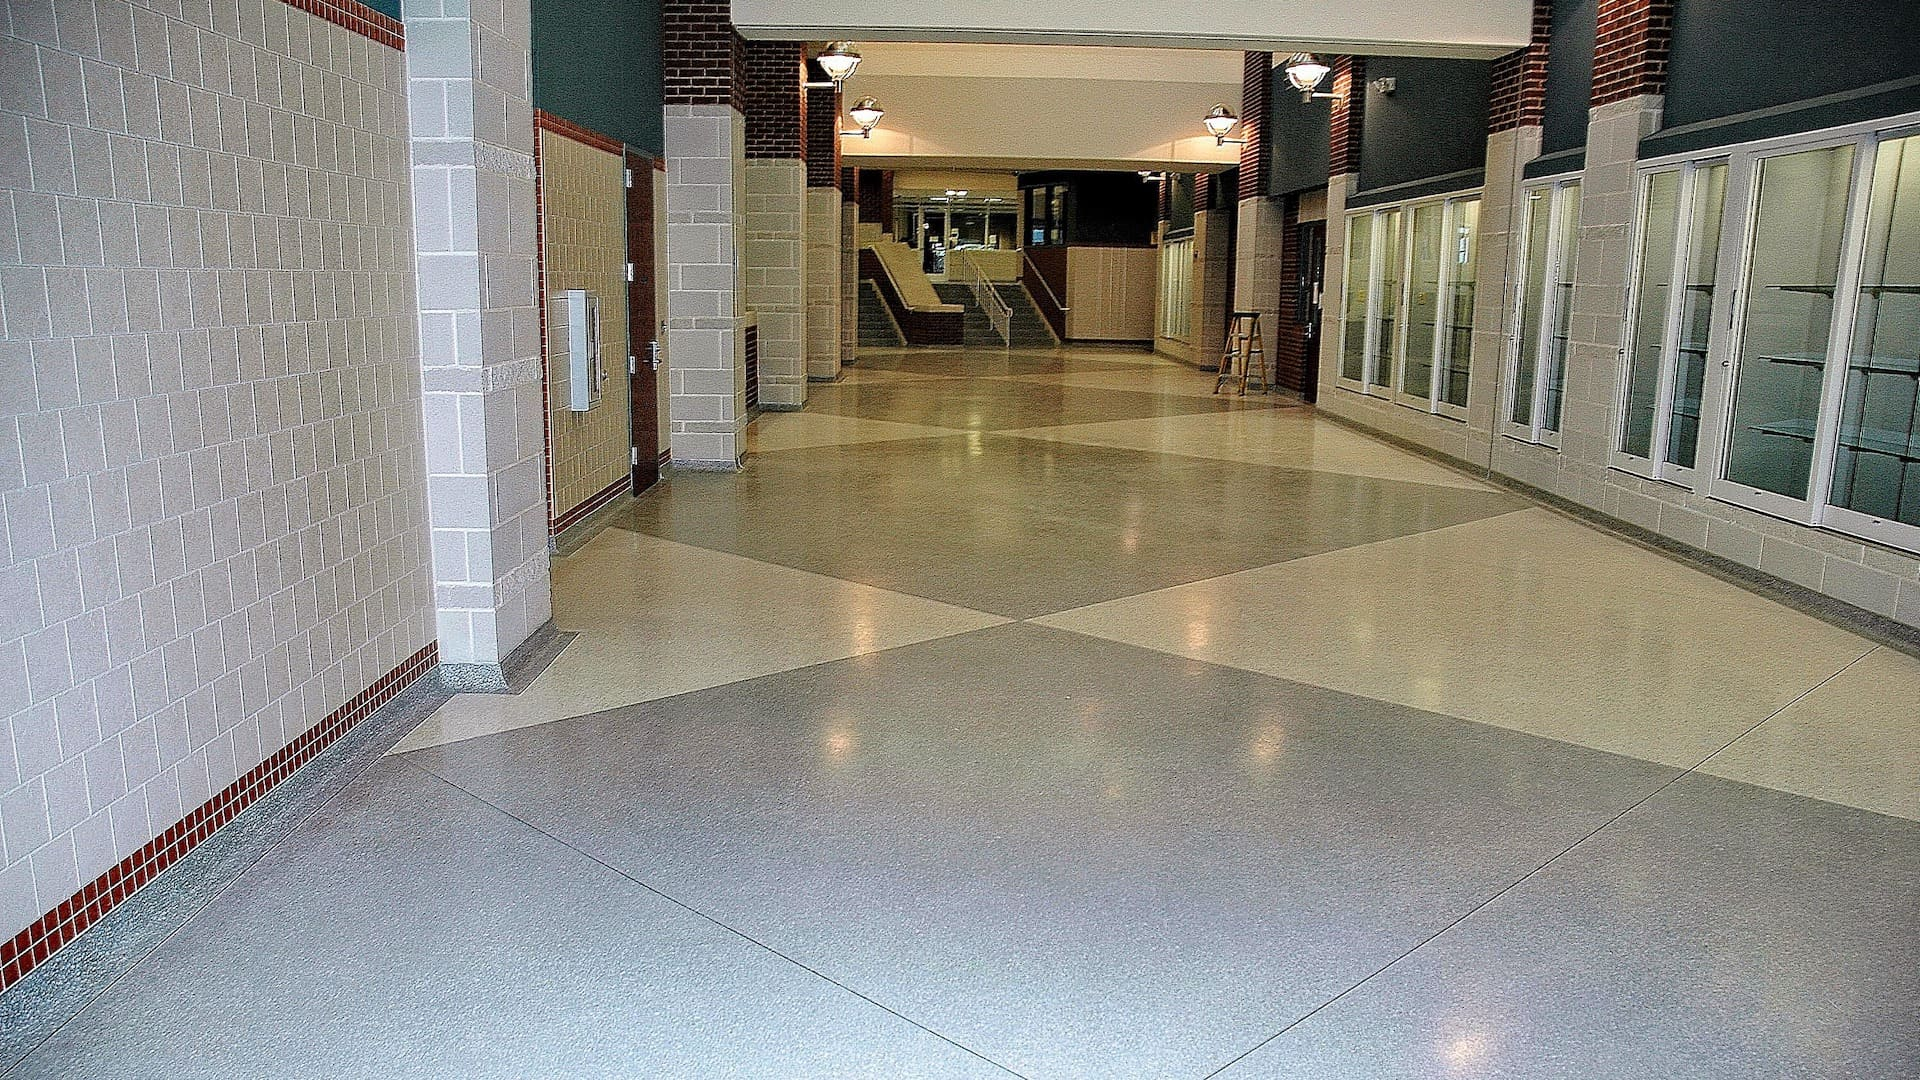 Terrazzo Flooring and Staircases at a Newly Constructed High School